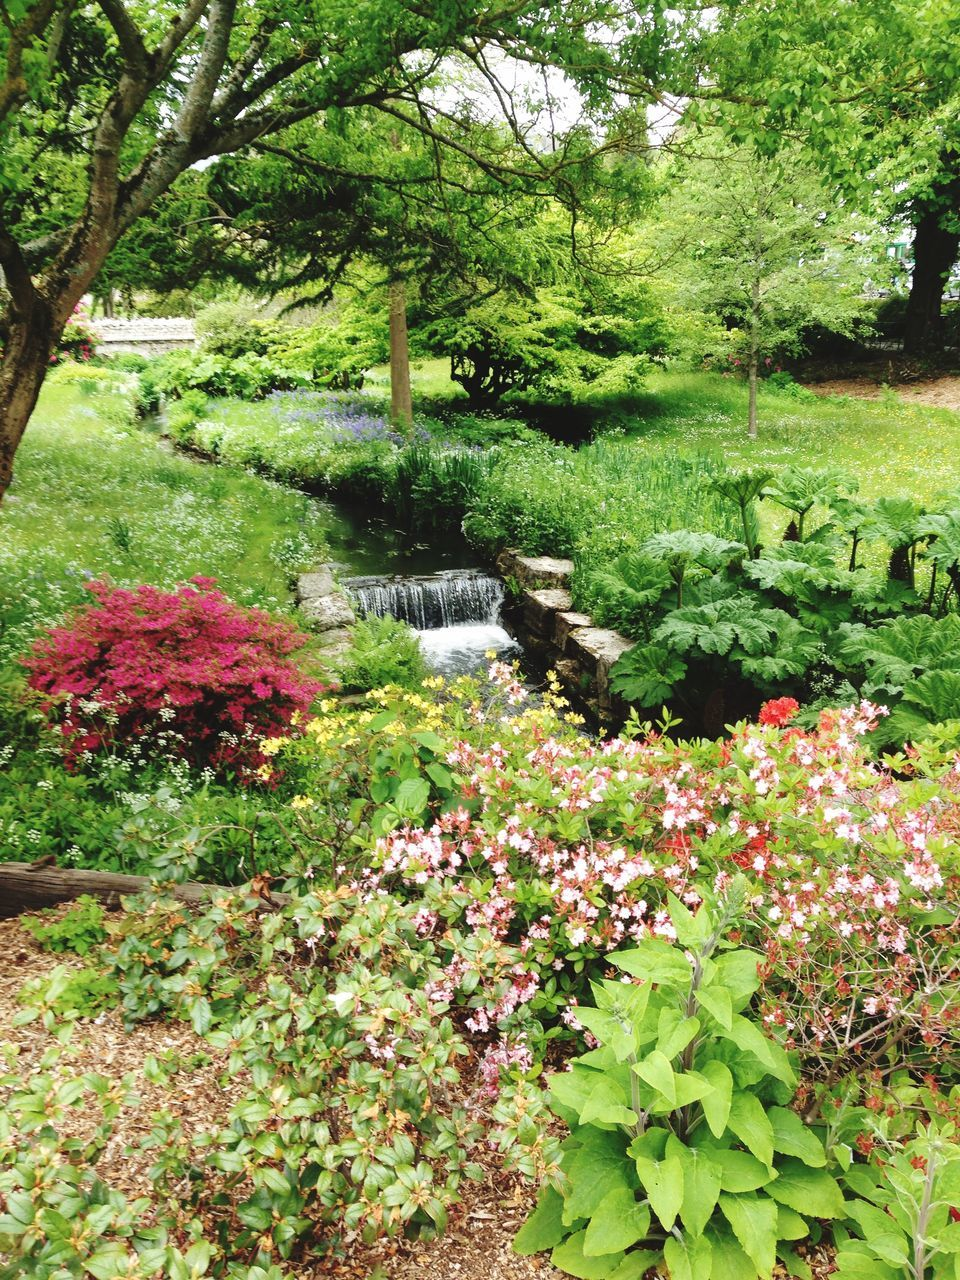 Plants And Stream In Park